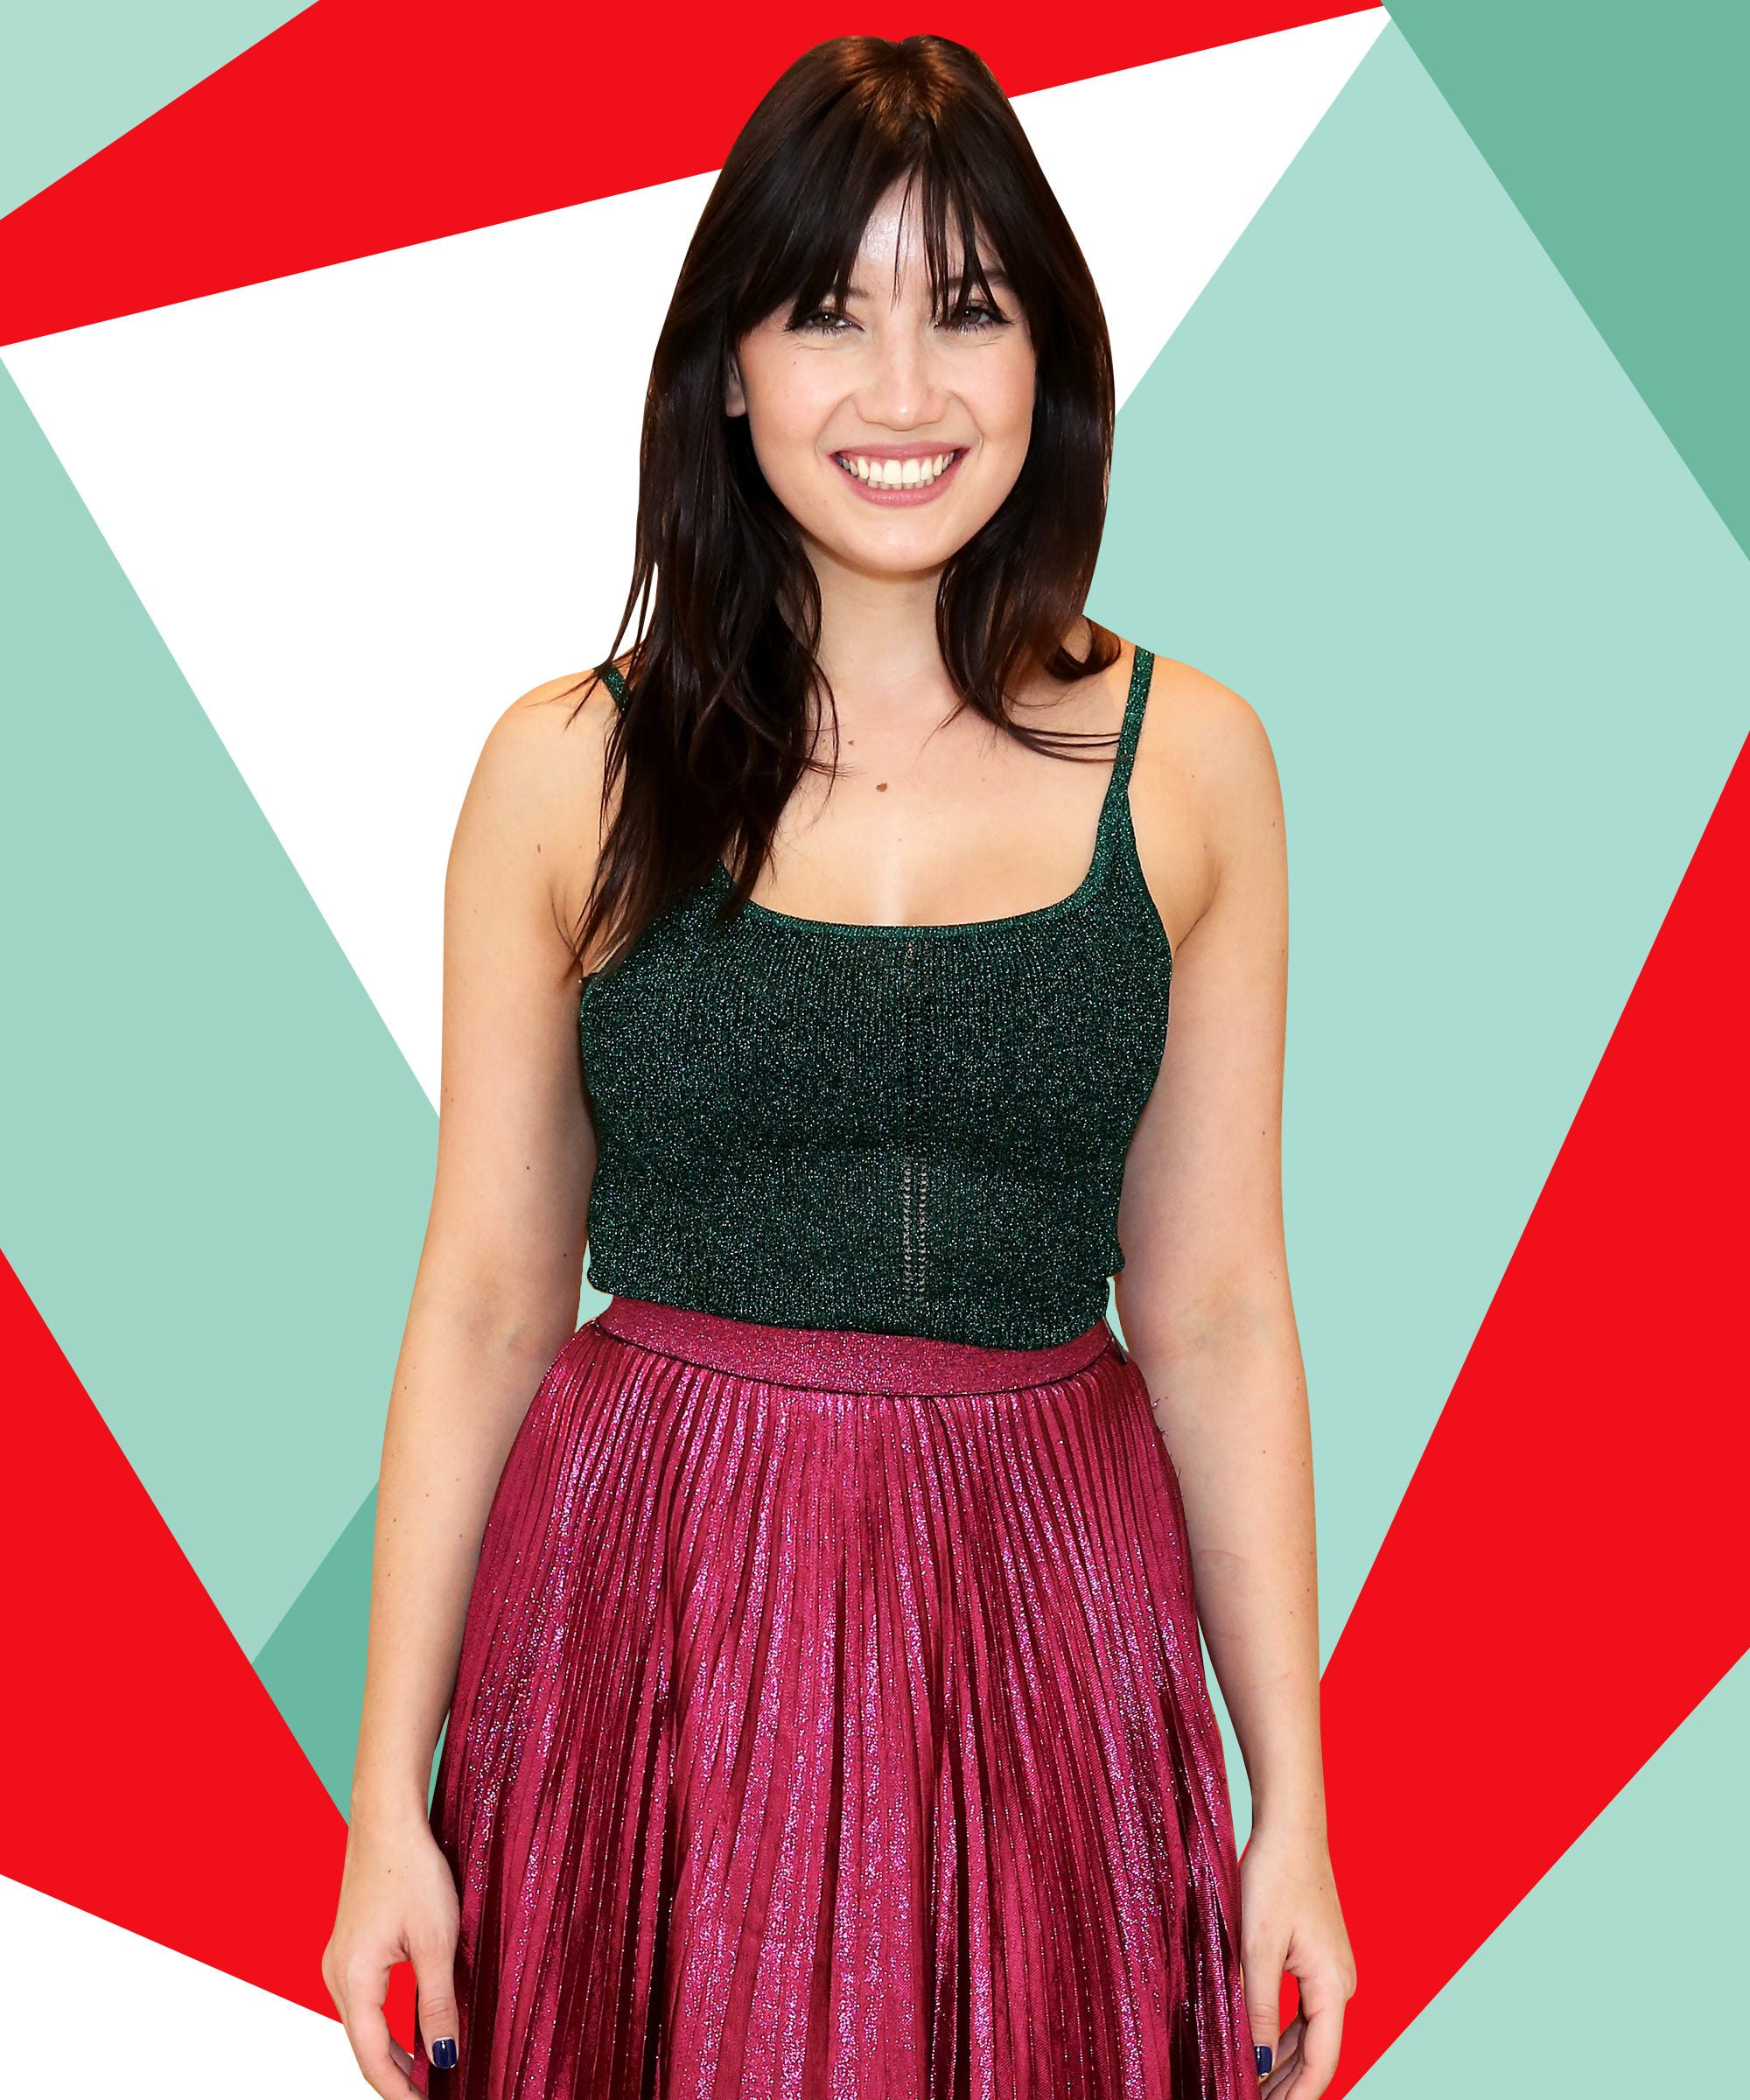 daisy-lowe-christmas-wishlist-main